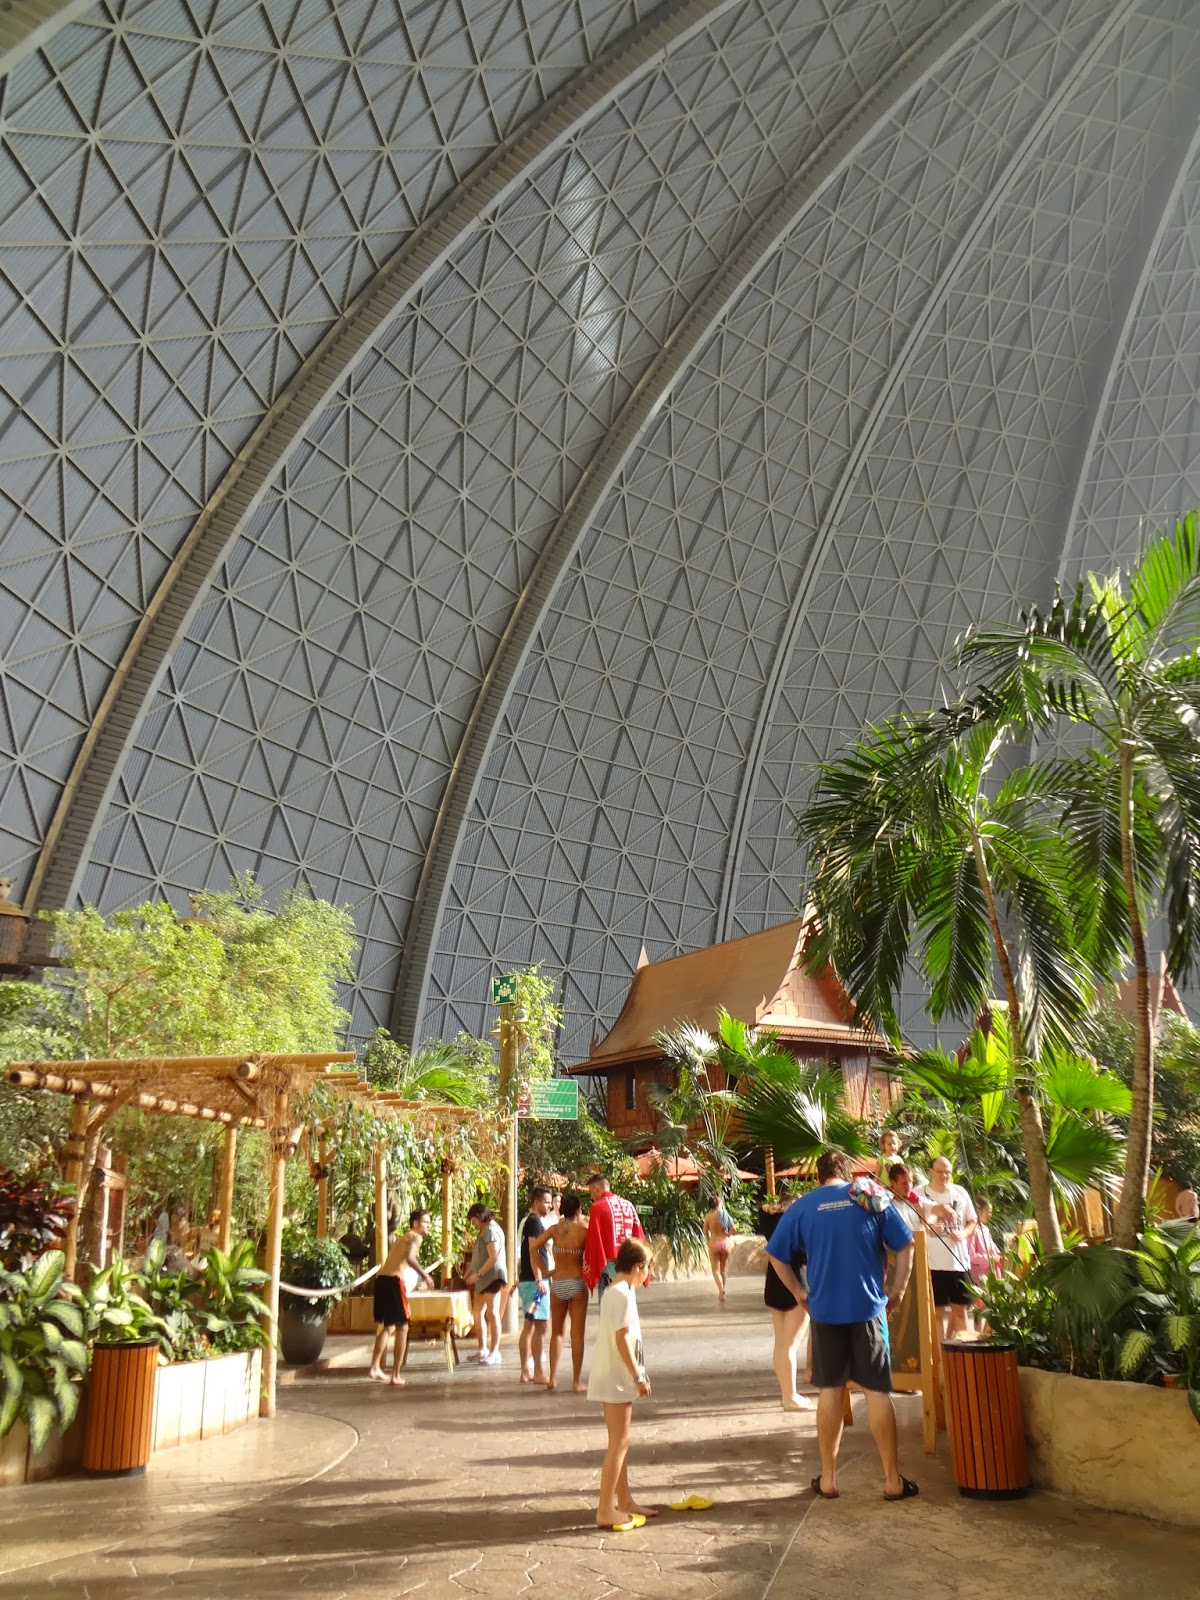 Back to Berlinand BEYOND: Berlins Tropical Island